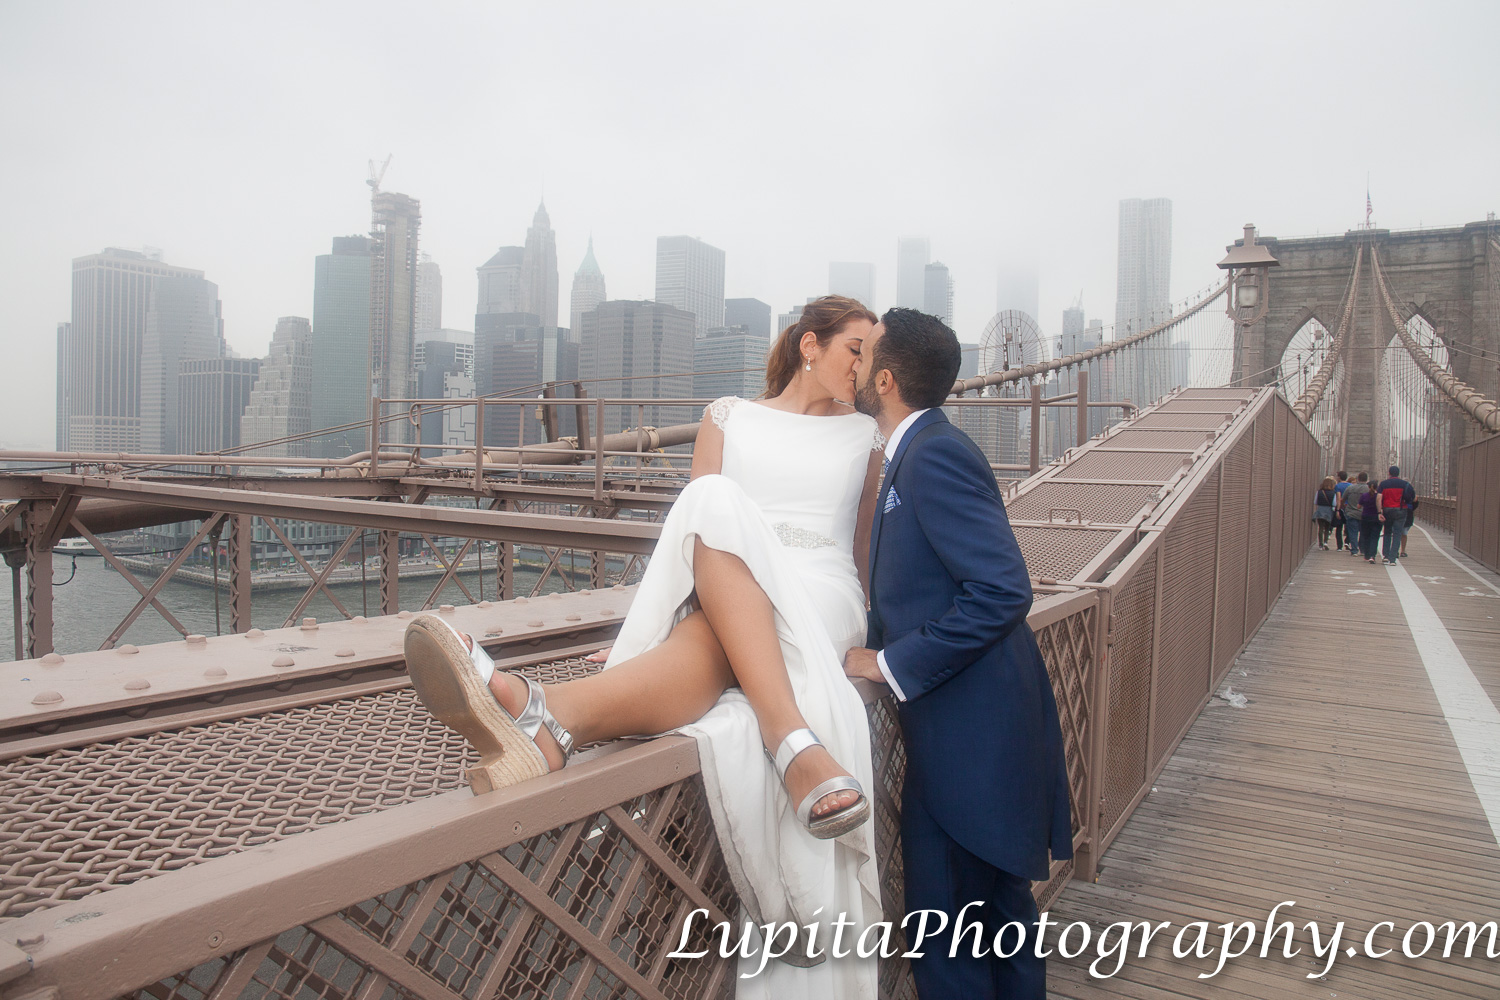 Pareja de España. Puente de Brooklyn. Ciudad de Nueva York. Couple from Spain. Brooklyn Bridge. New York City.